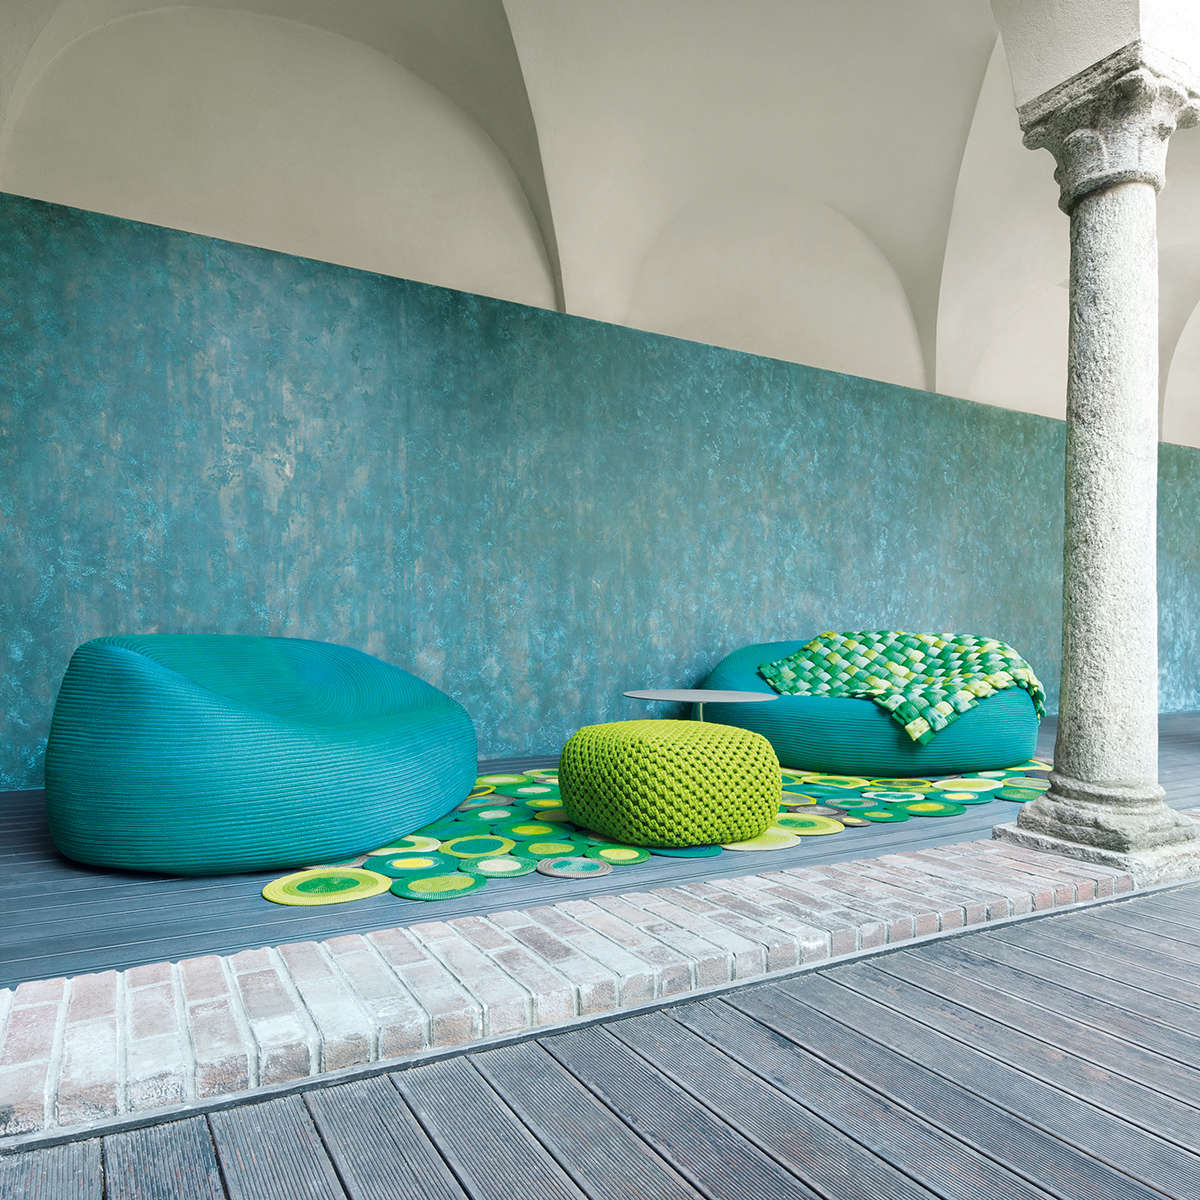 Paola Lenti Berry Hr 4